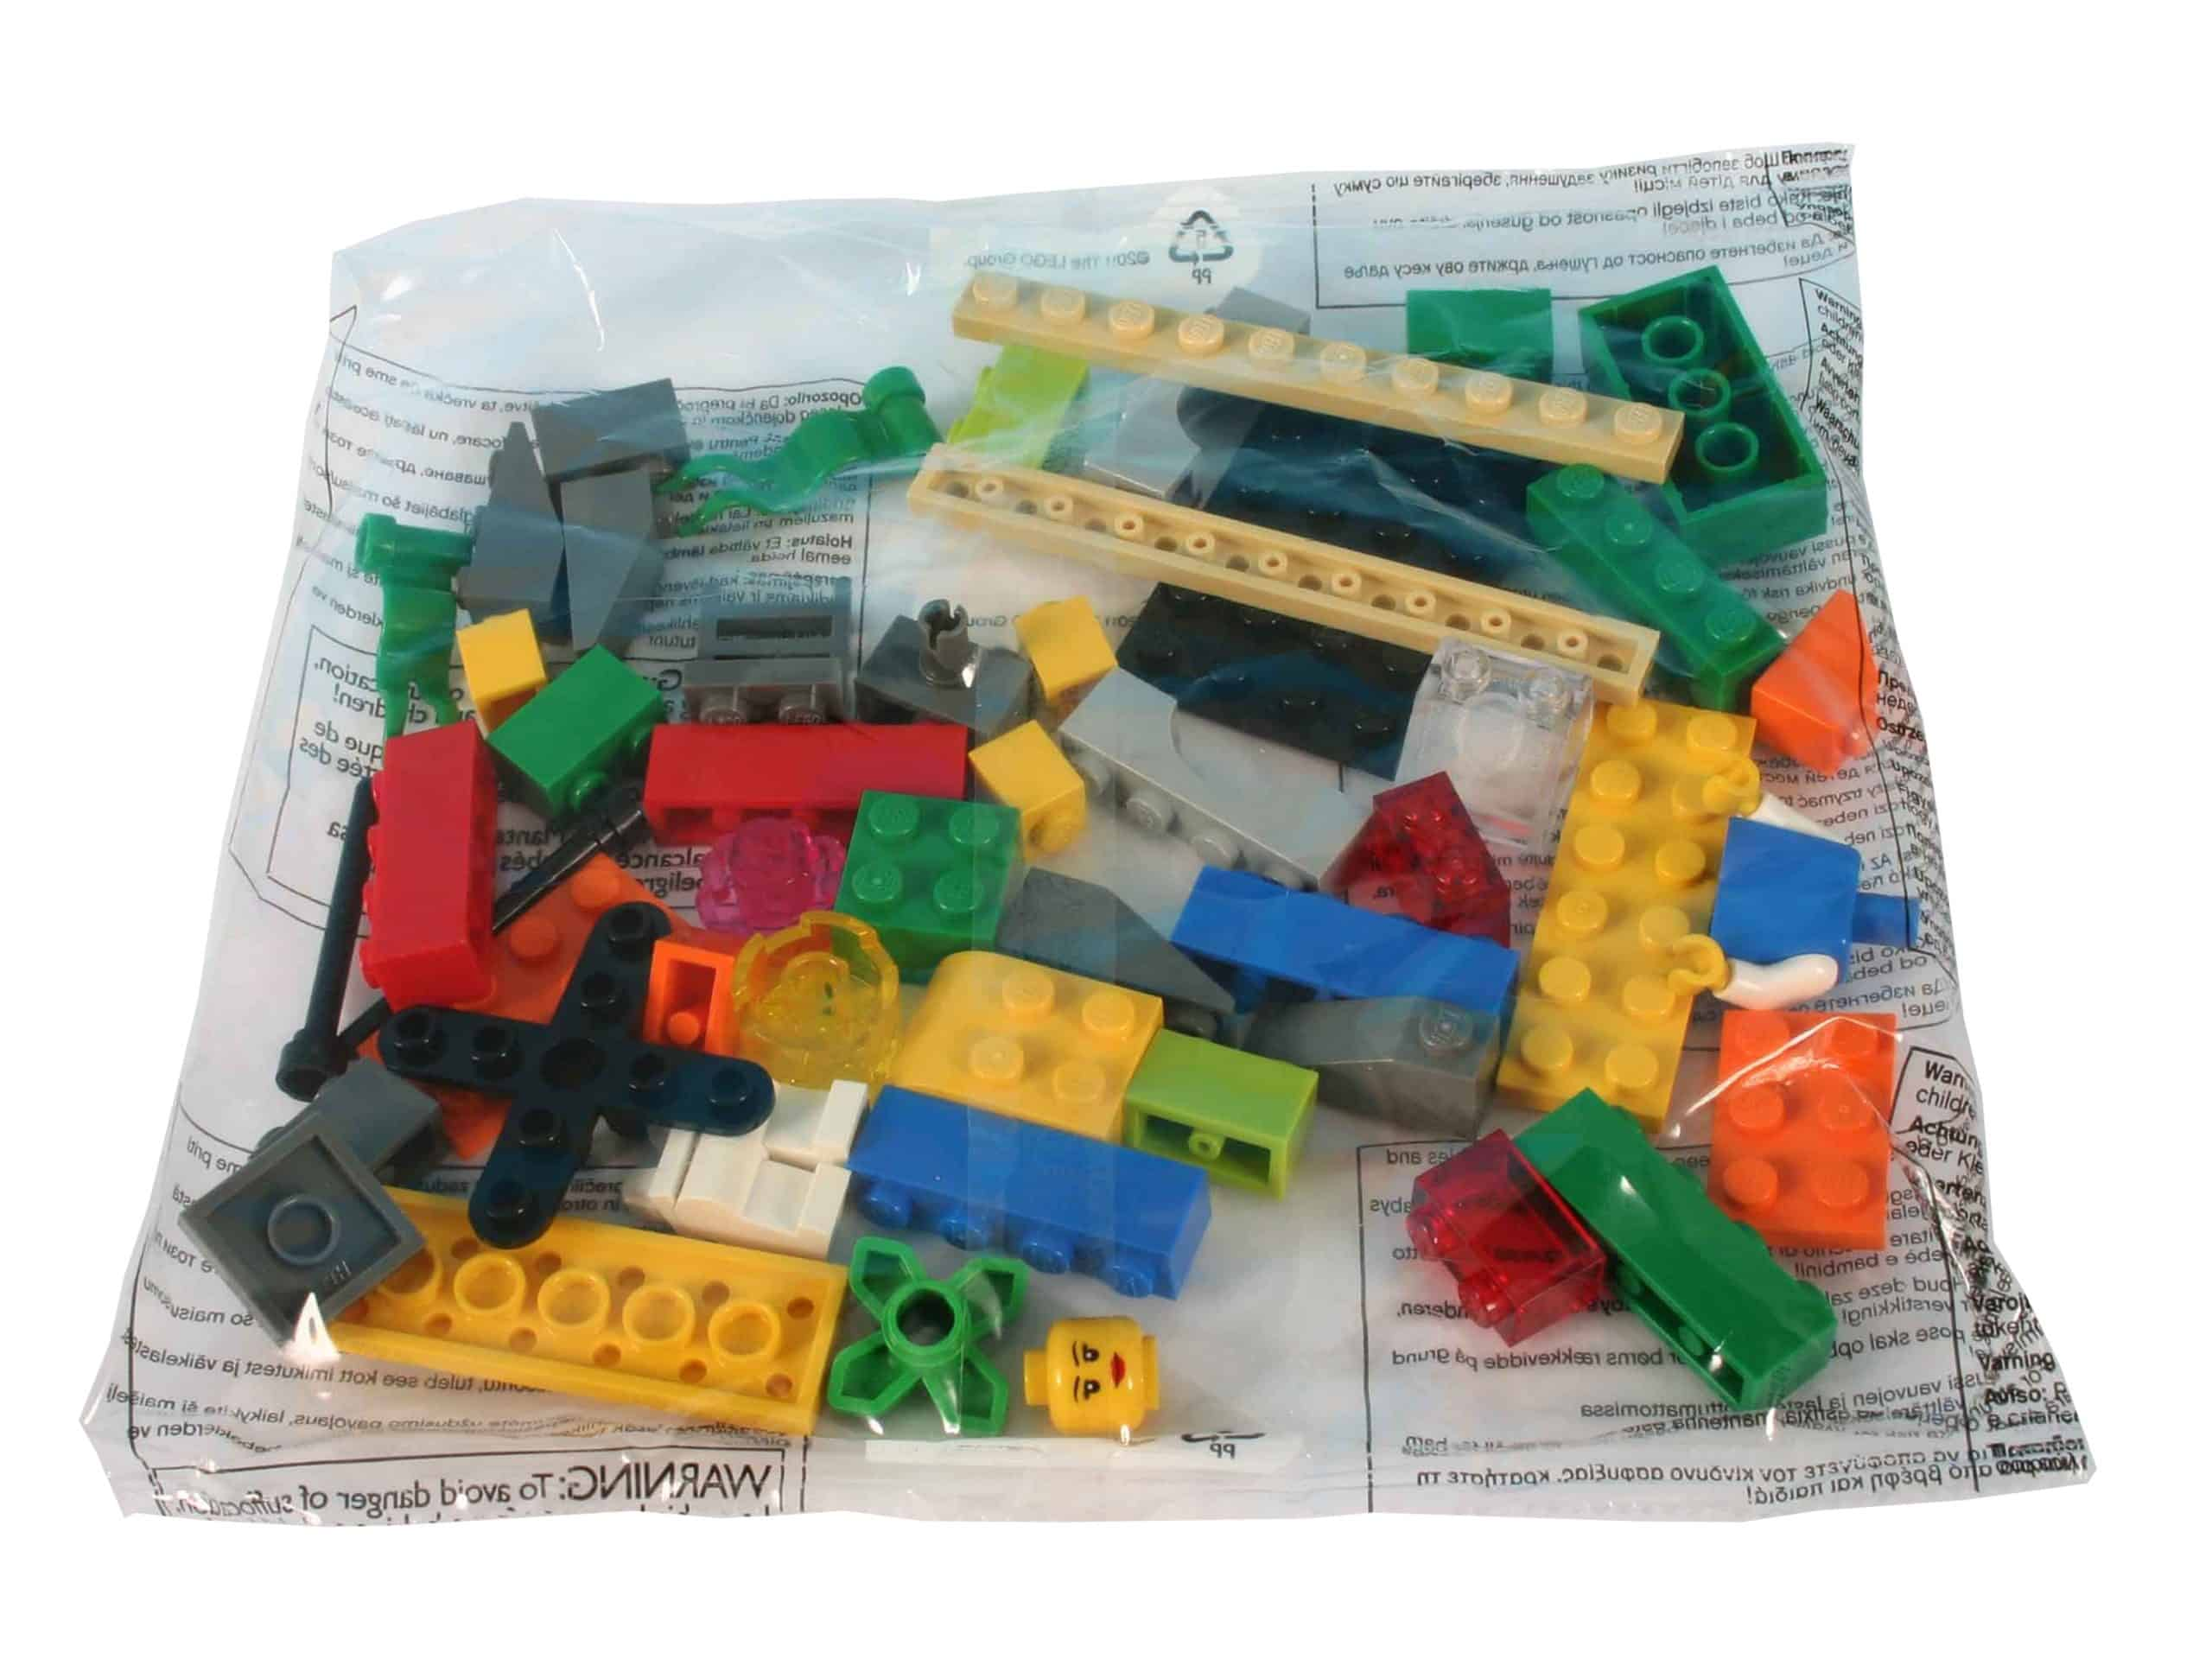 lego 2000409 serious play window exploration bag scaled